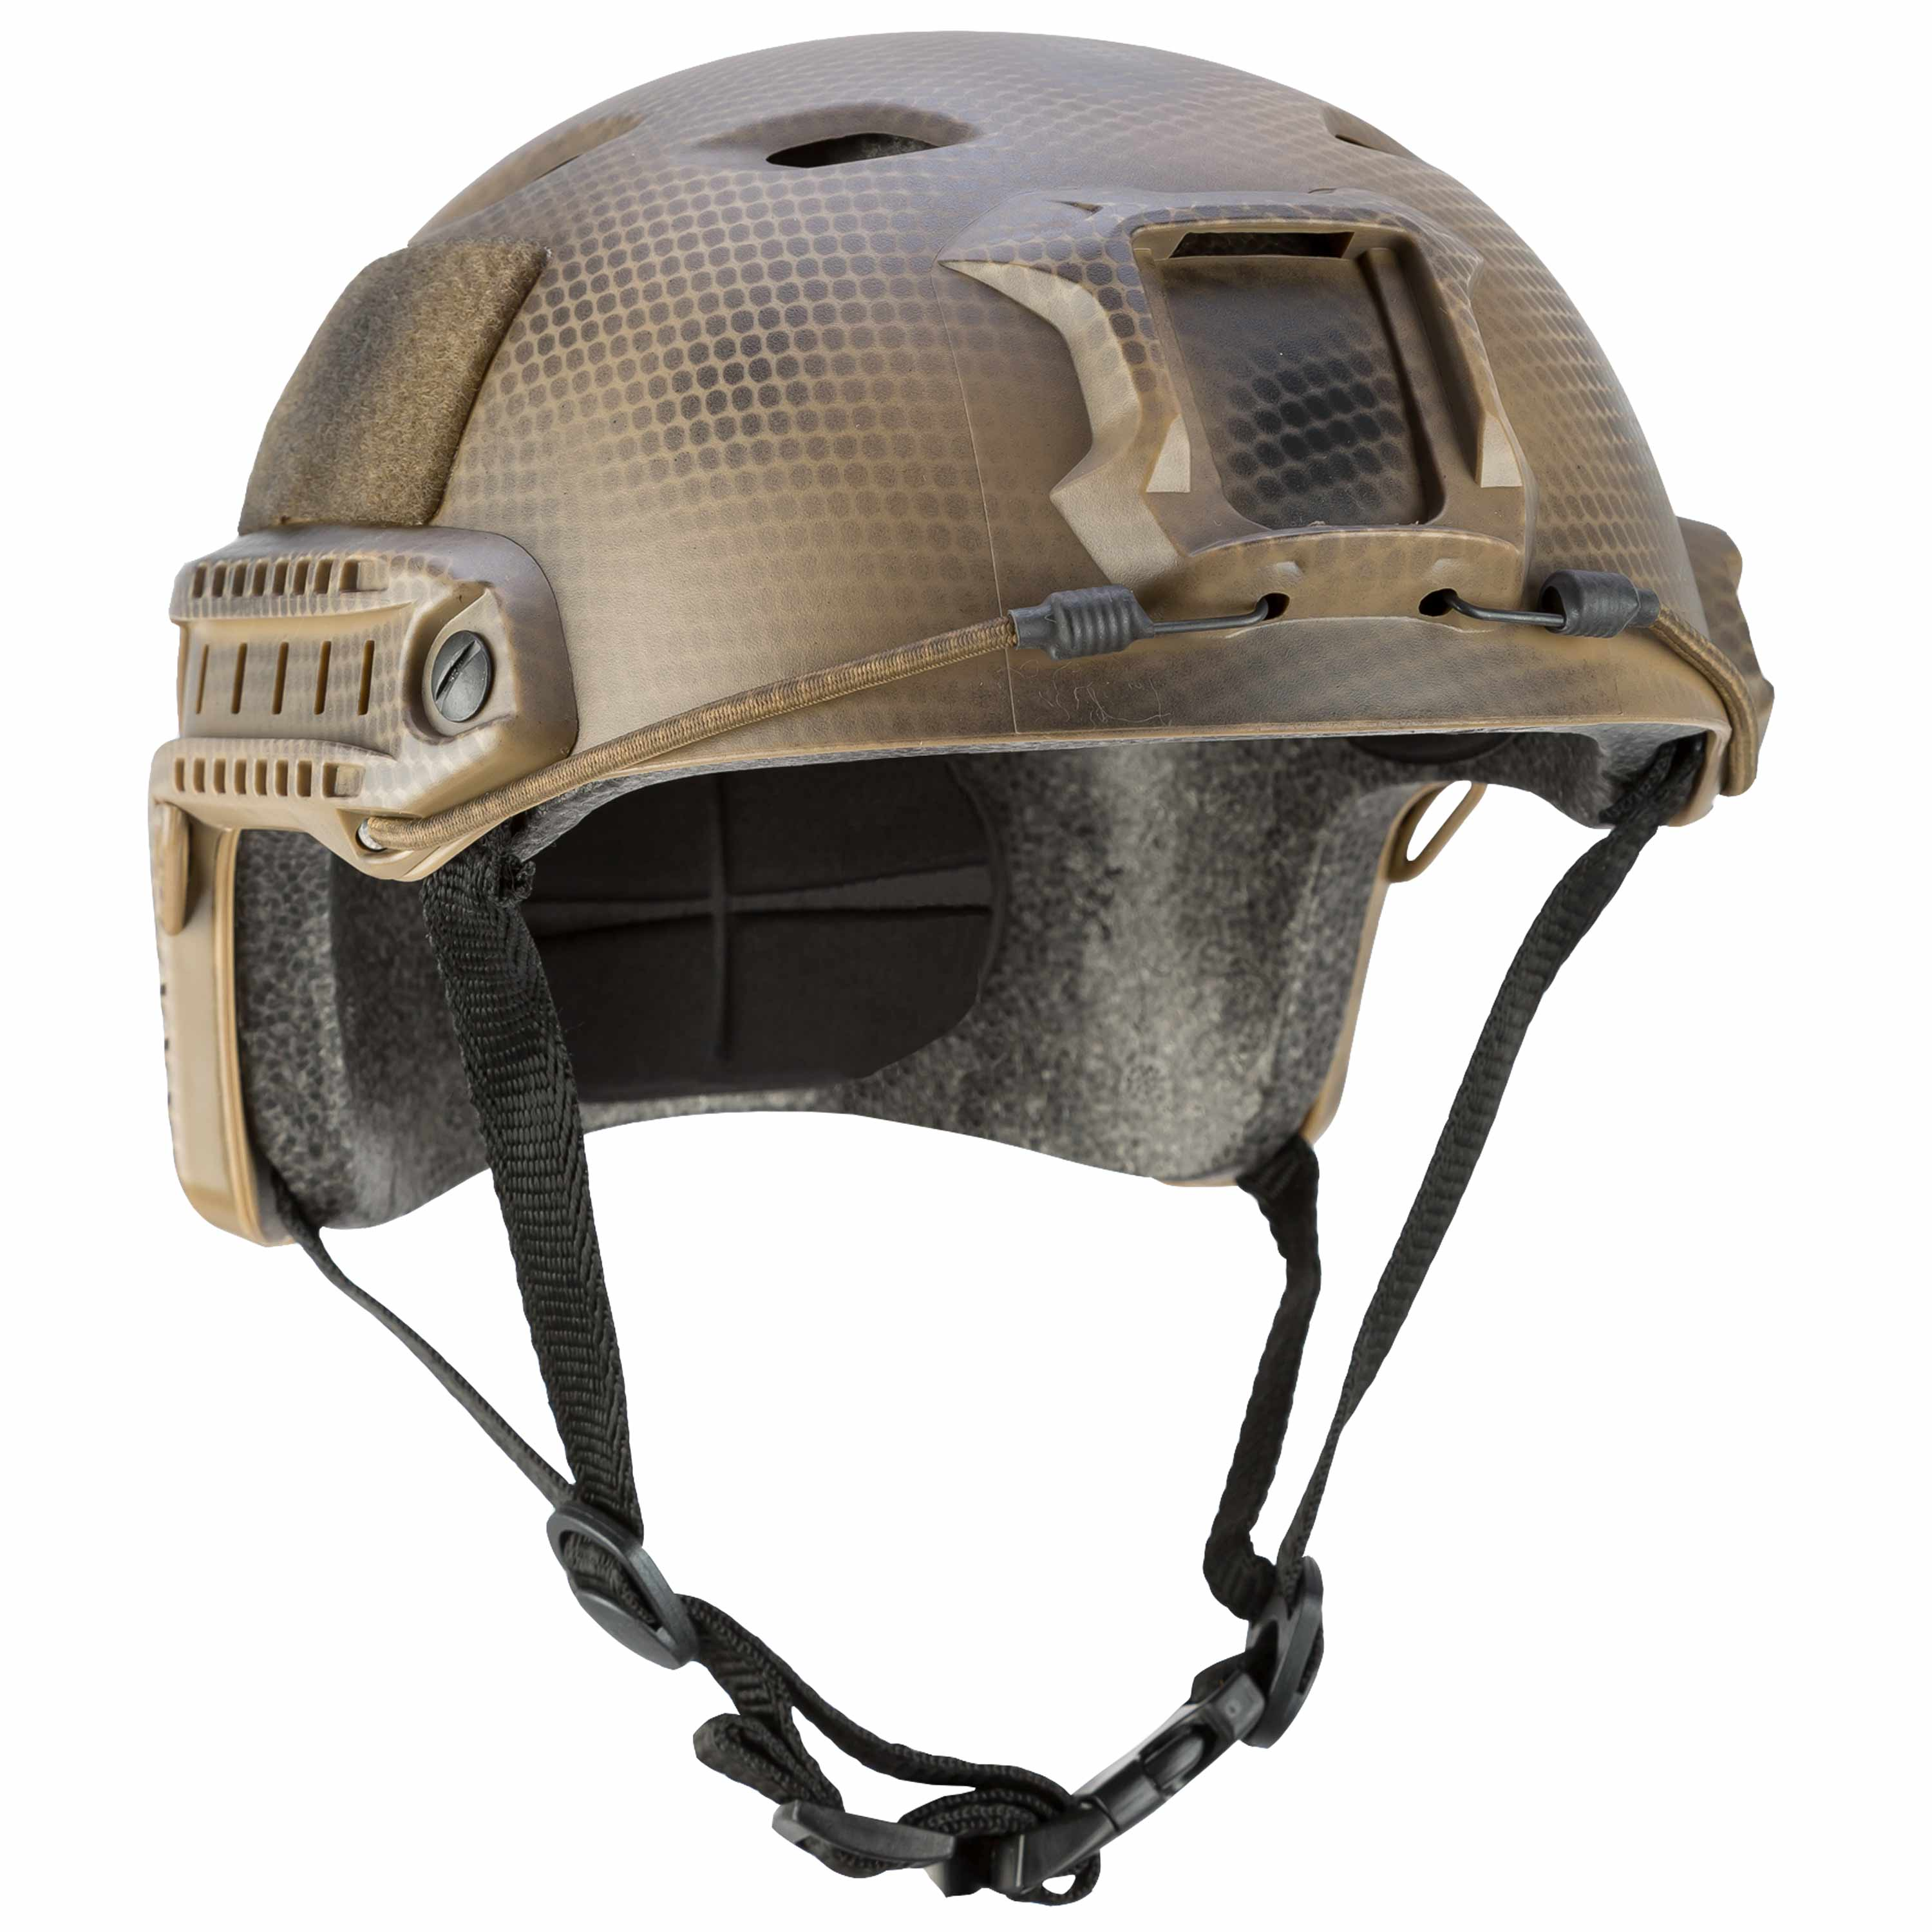 Emerson Helm Fast Helmet BJ Eco Version subdued